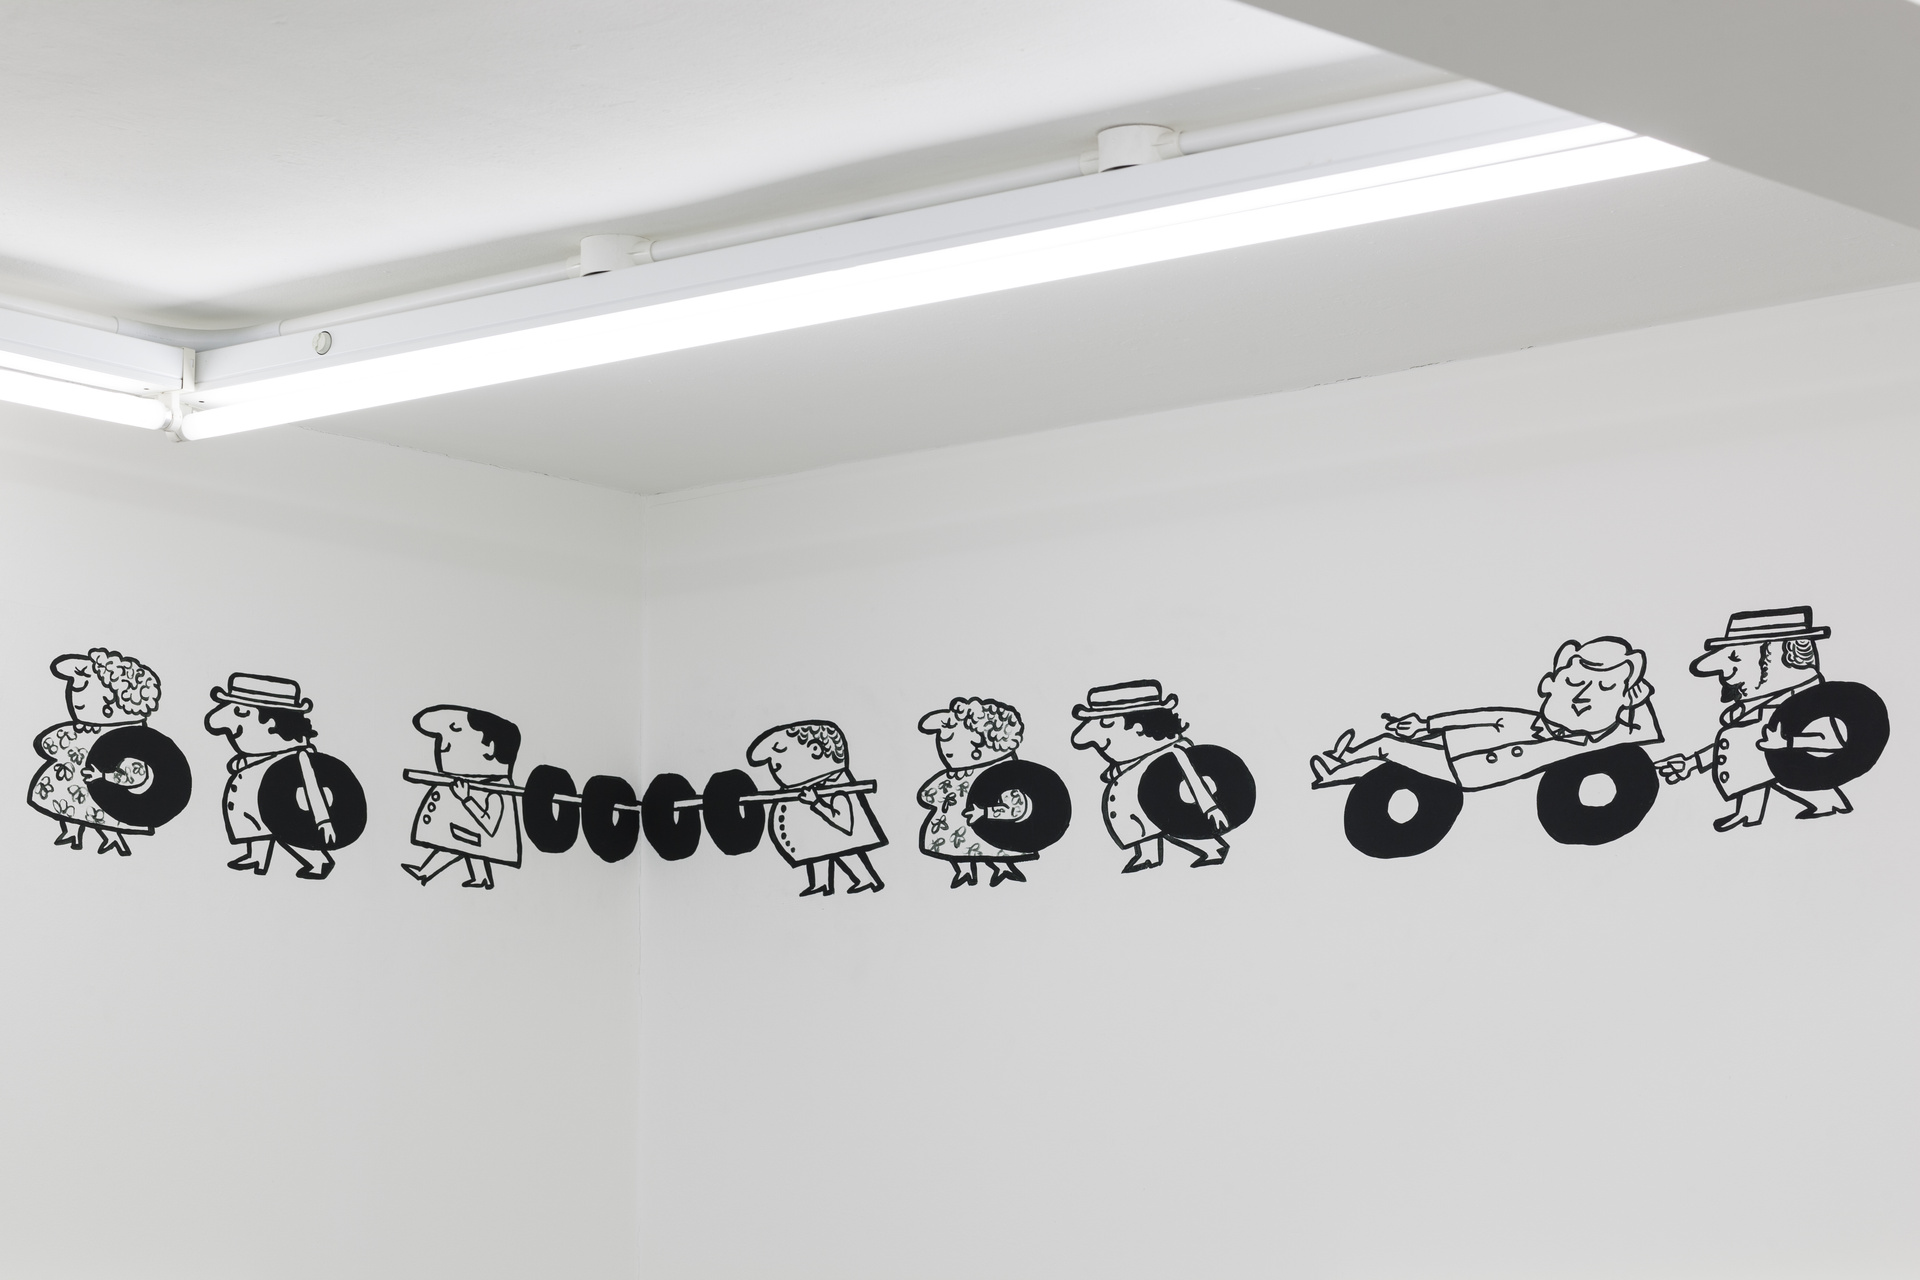 Sophie Lee, ÔÇÿGod speed the ploughÔÇÖ, 2015, wall drawing, acrylic paint, installation dimensions variable